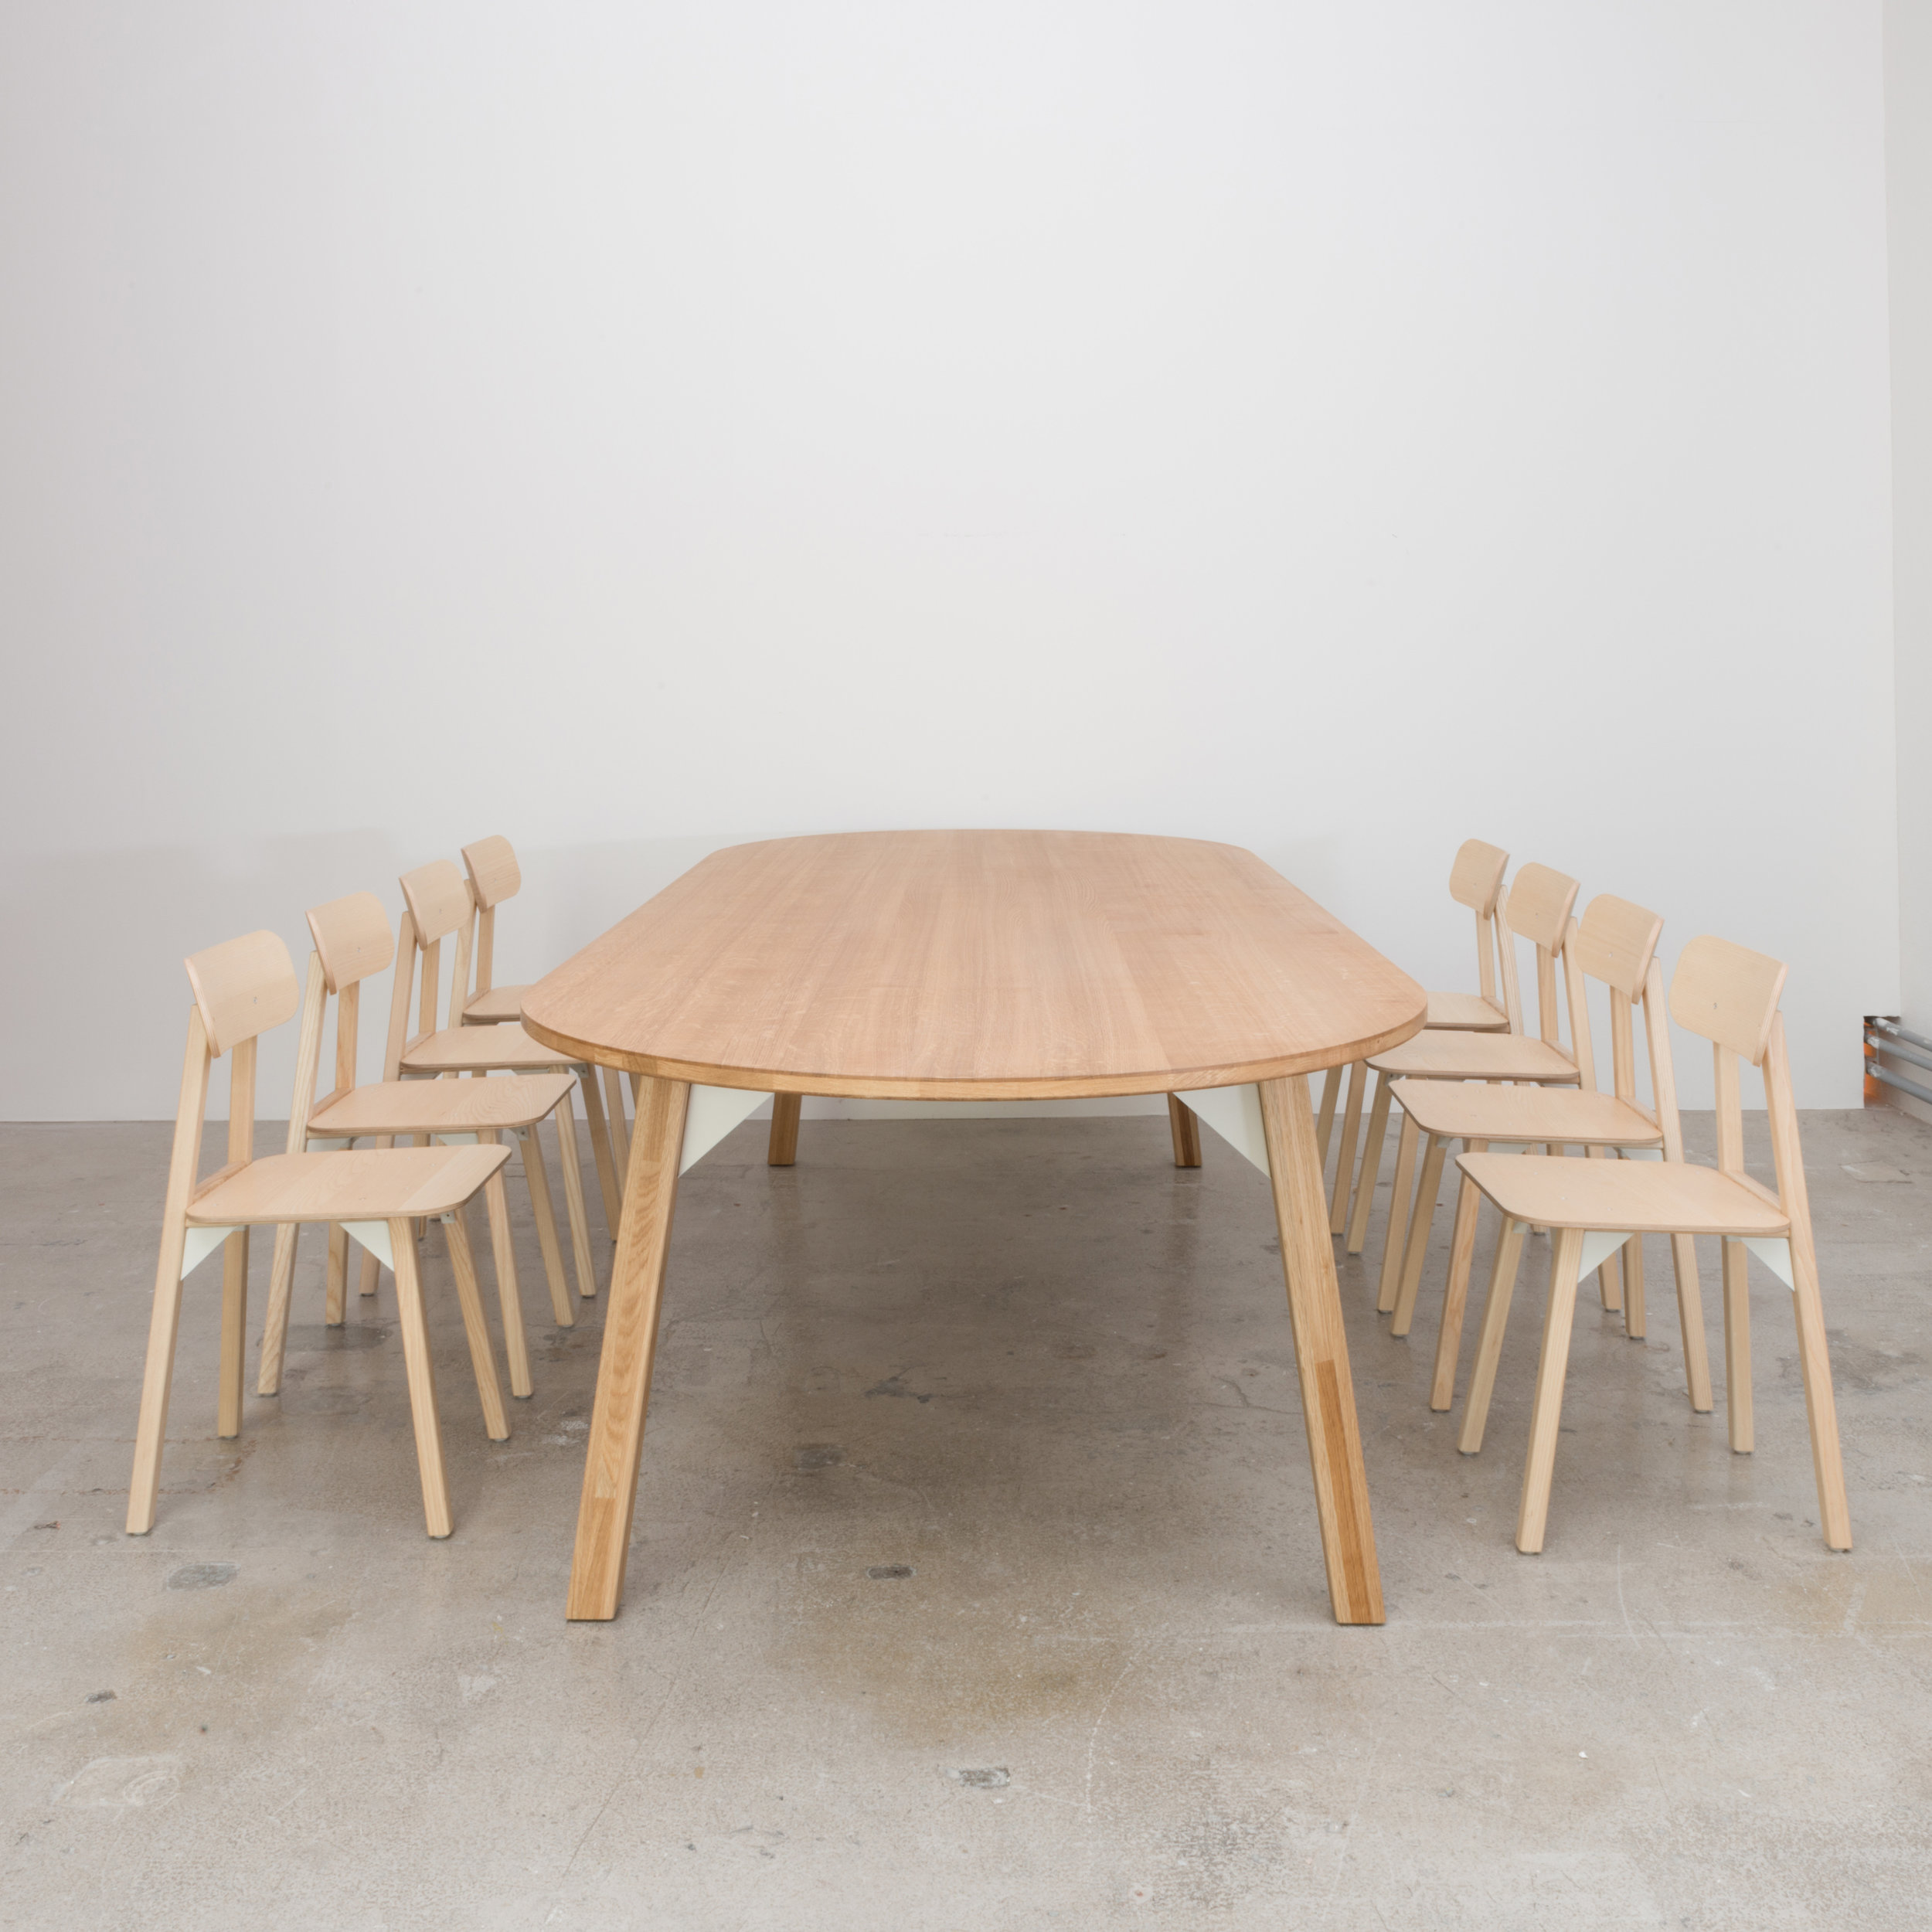 Oak Table 3000 x 1000 x 740H and Ash chairs